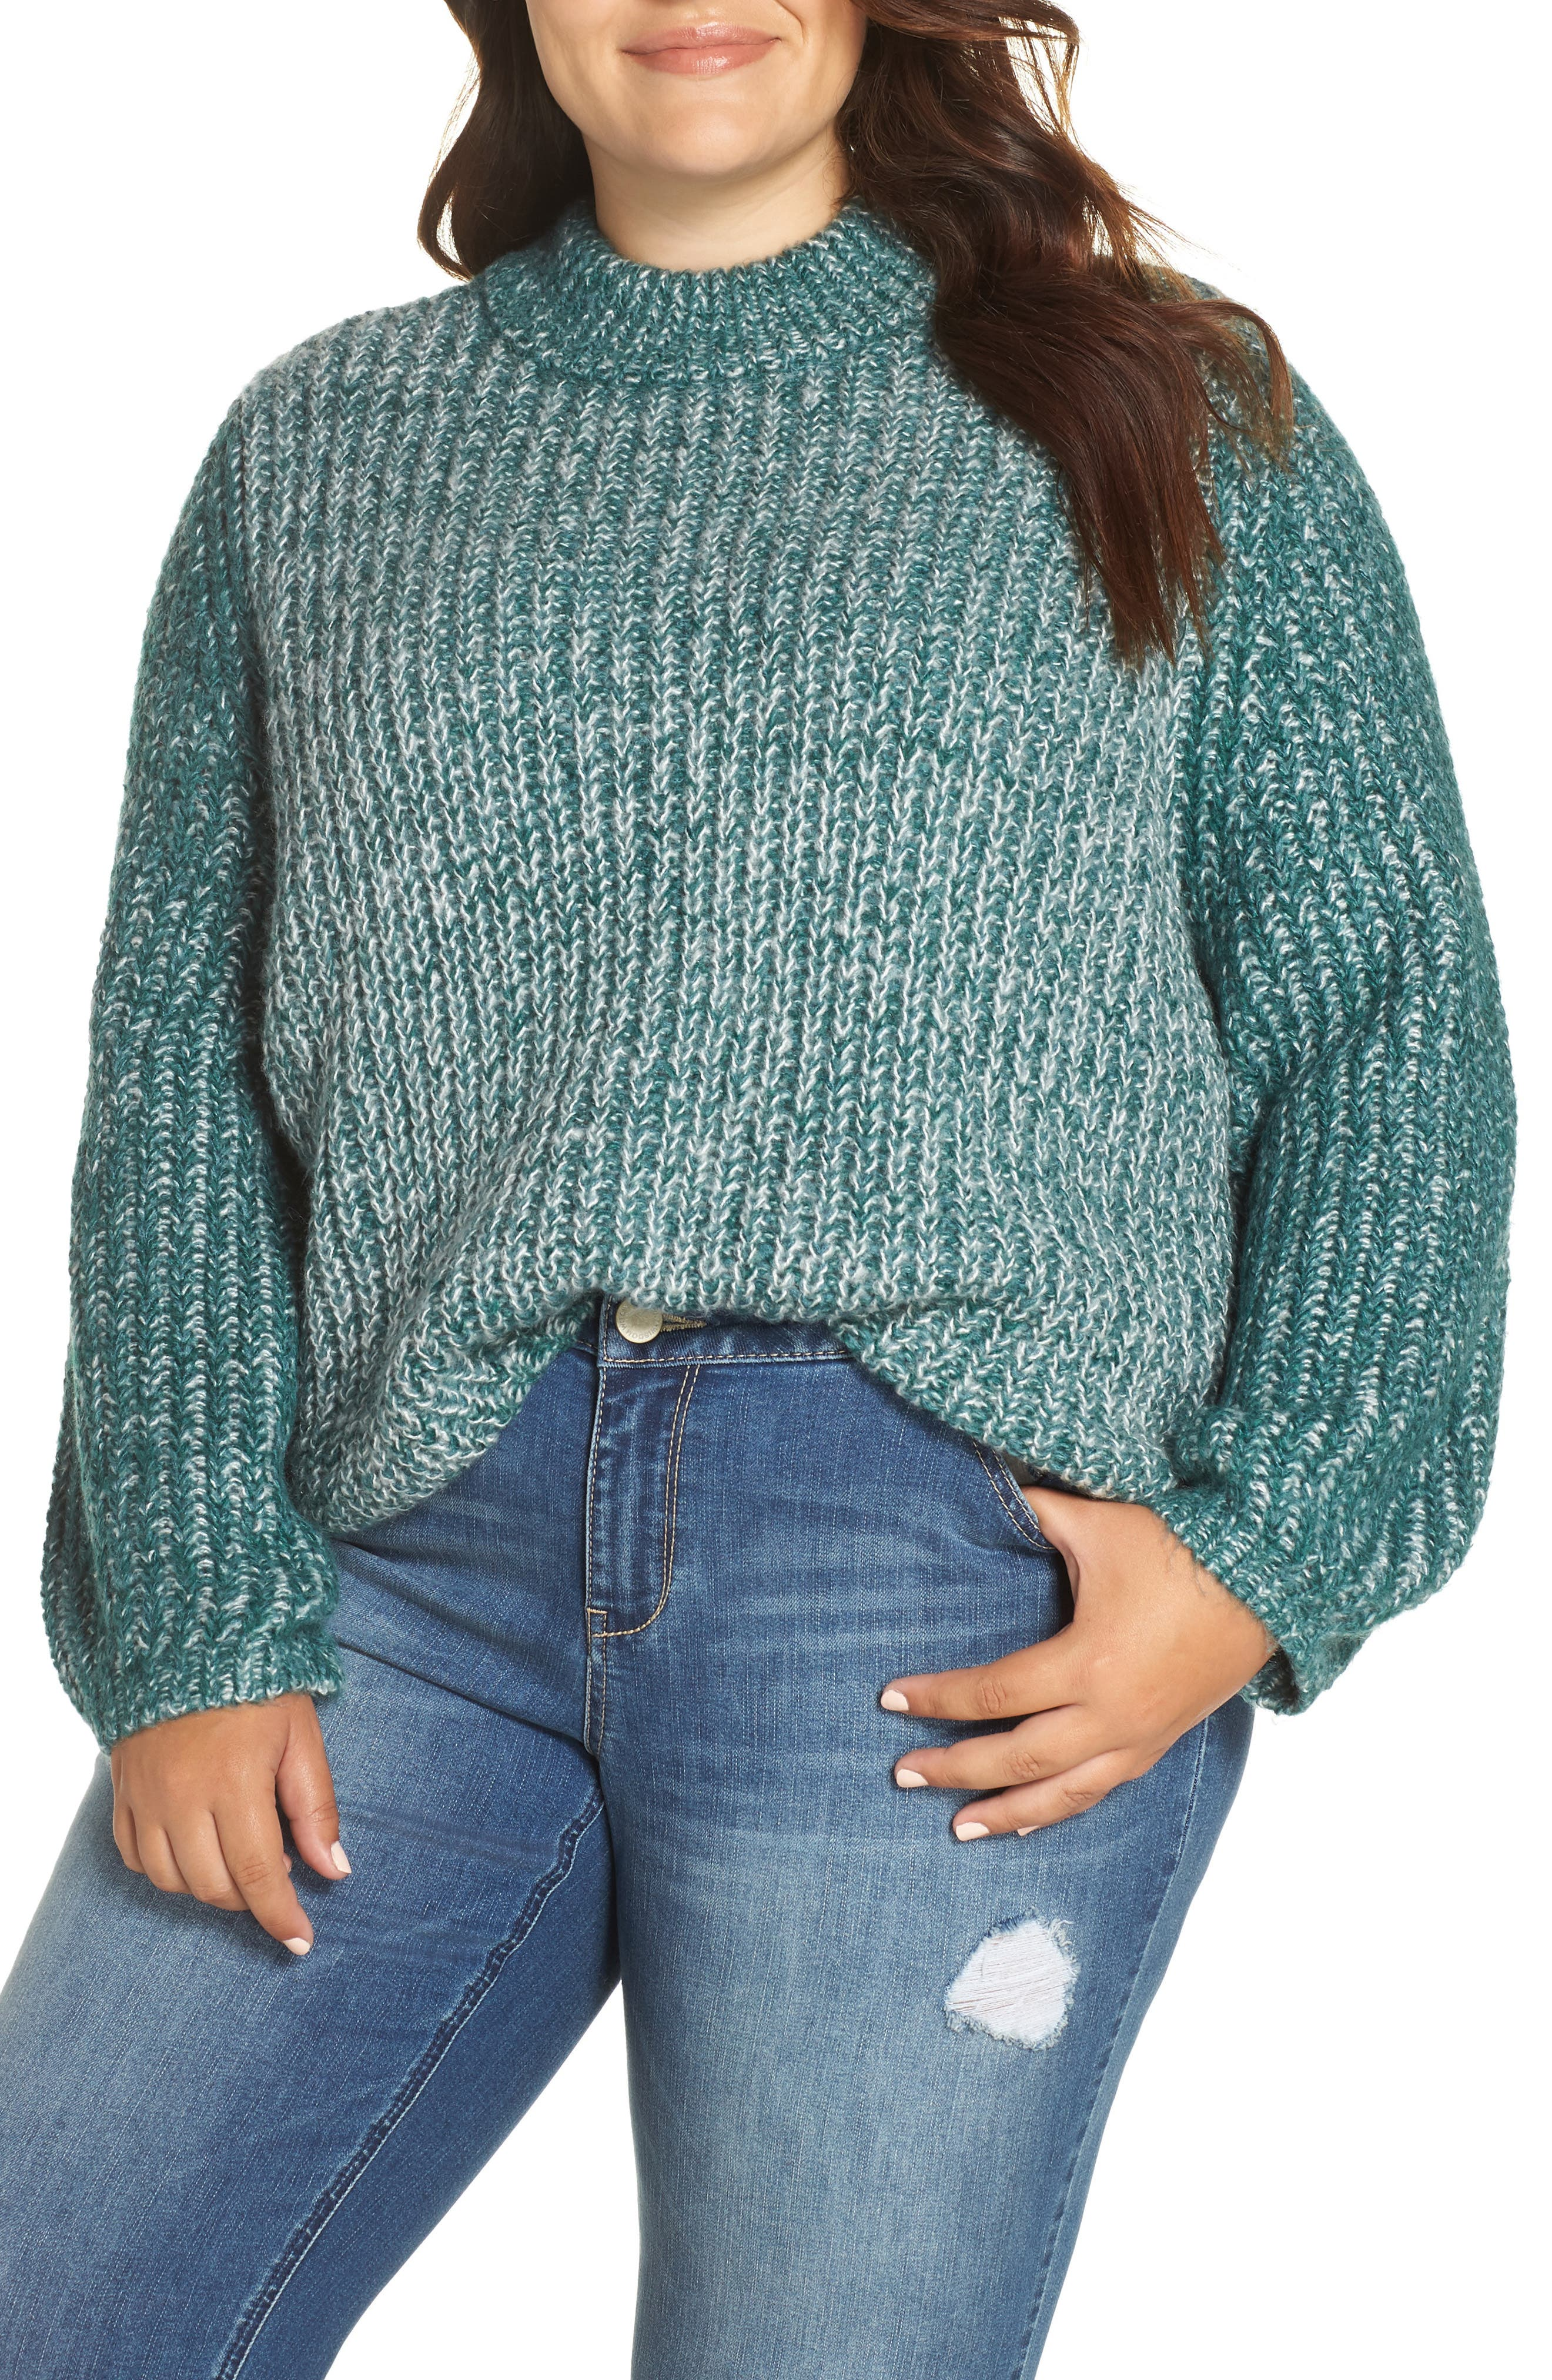 Marl Knit Sweater,                         Main,                         color, TEAL HYDRO